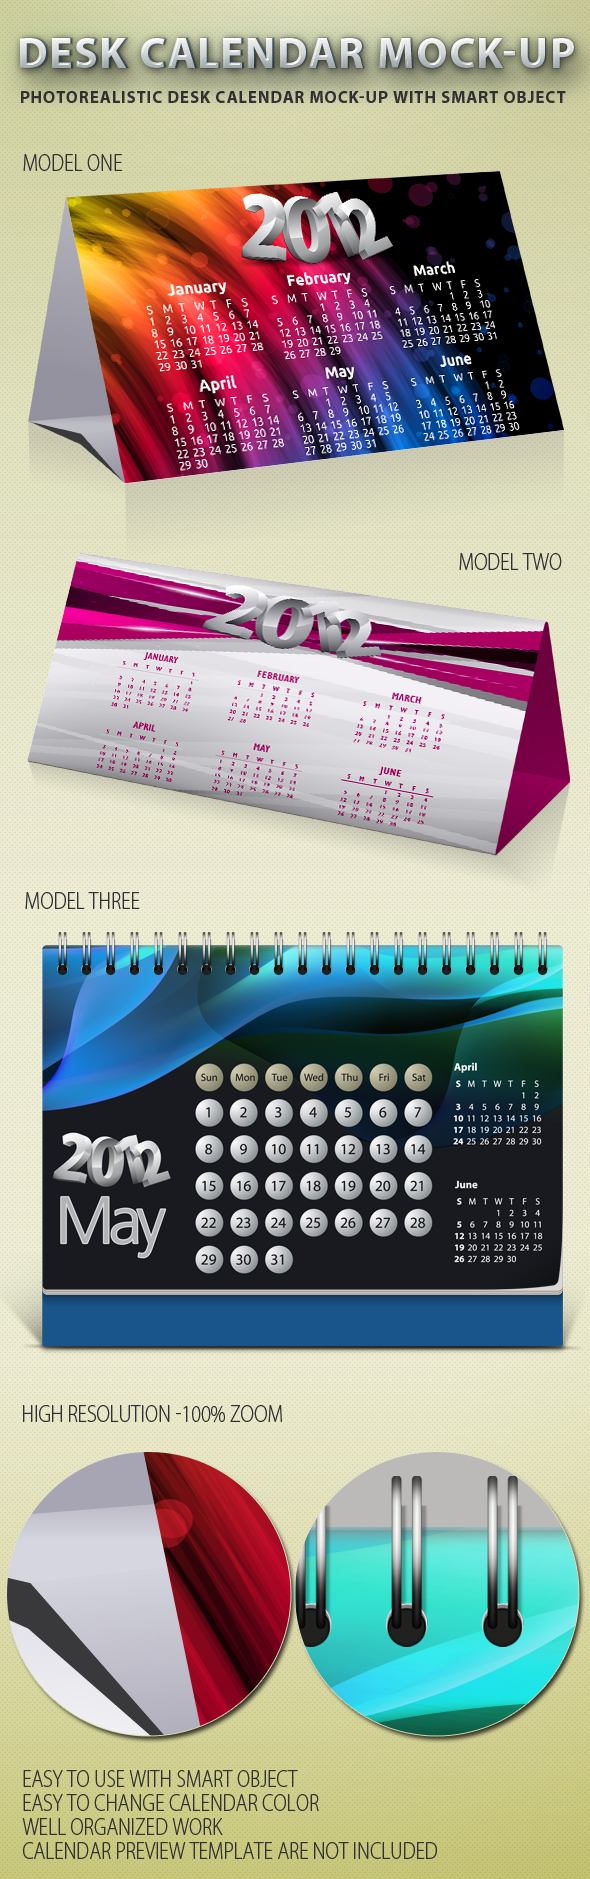 Table Calendar Mockup : Desk calendar mock up idesignstudio